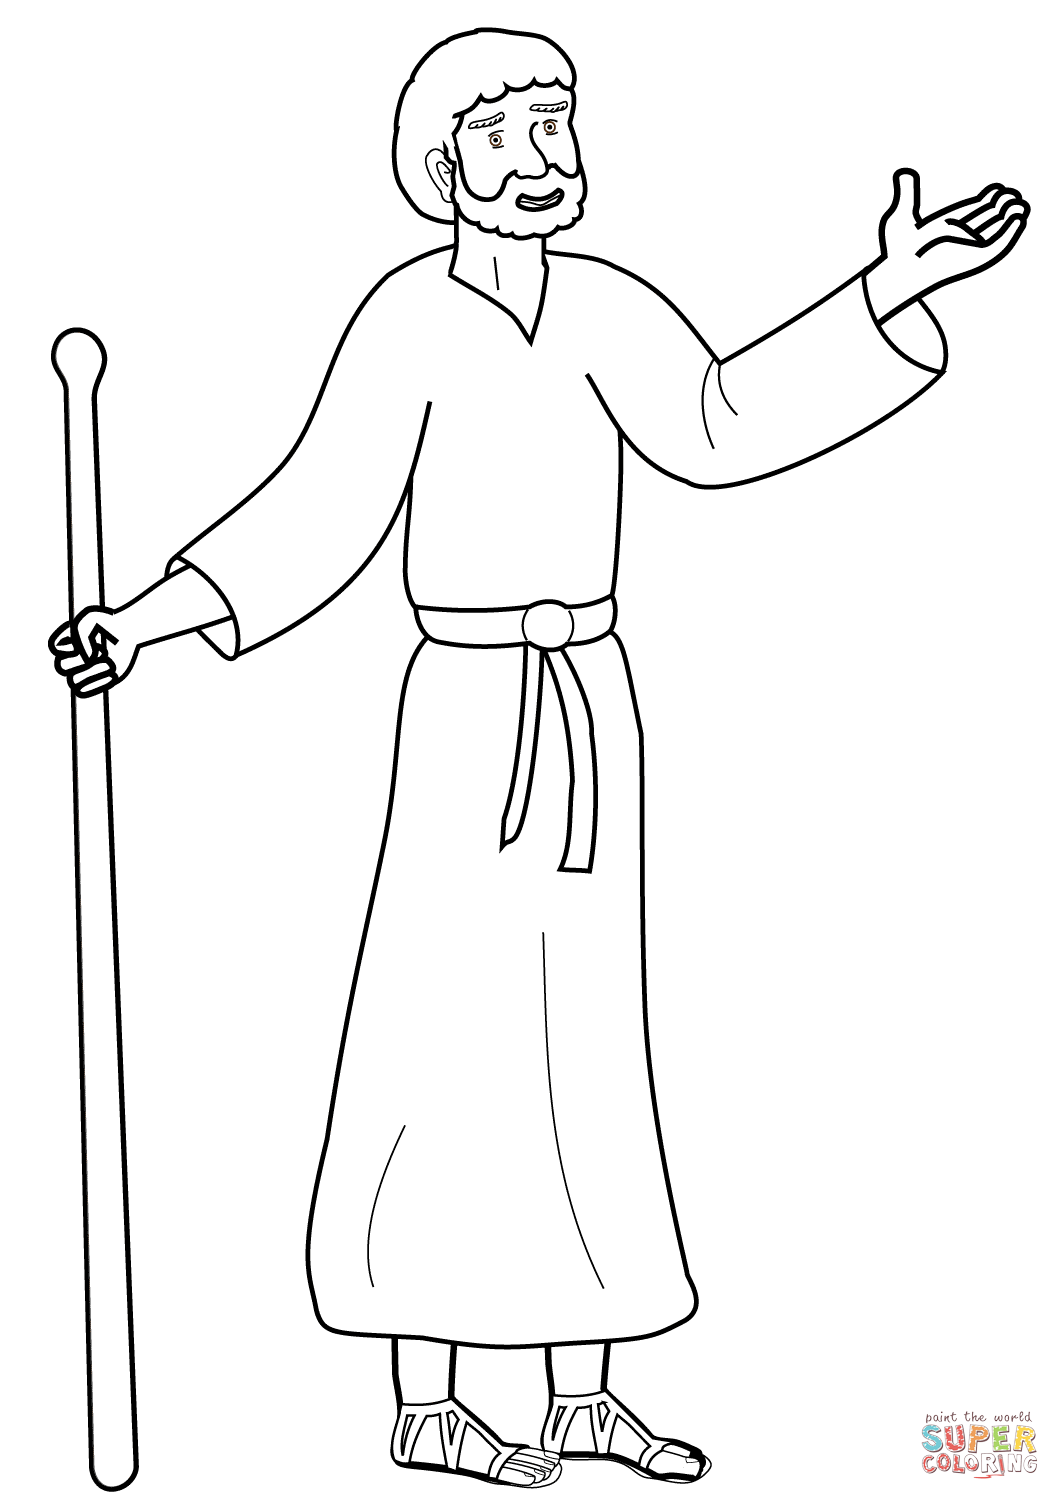 Cartoon Paul the Apostle coloring page.